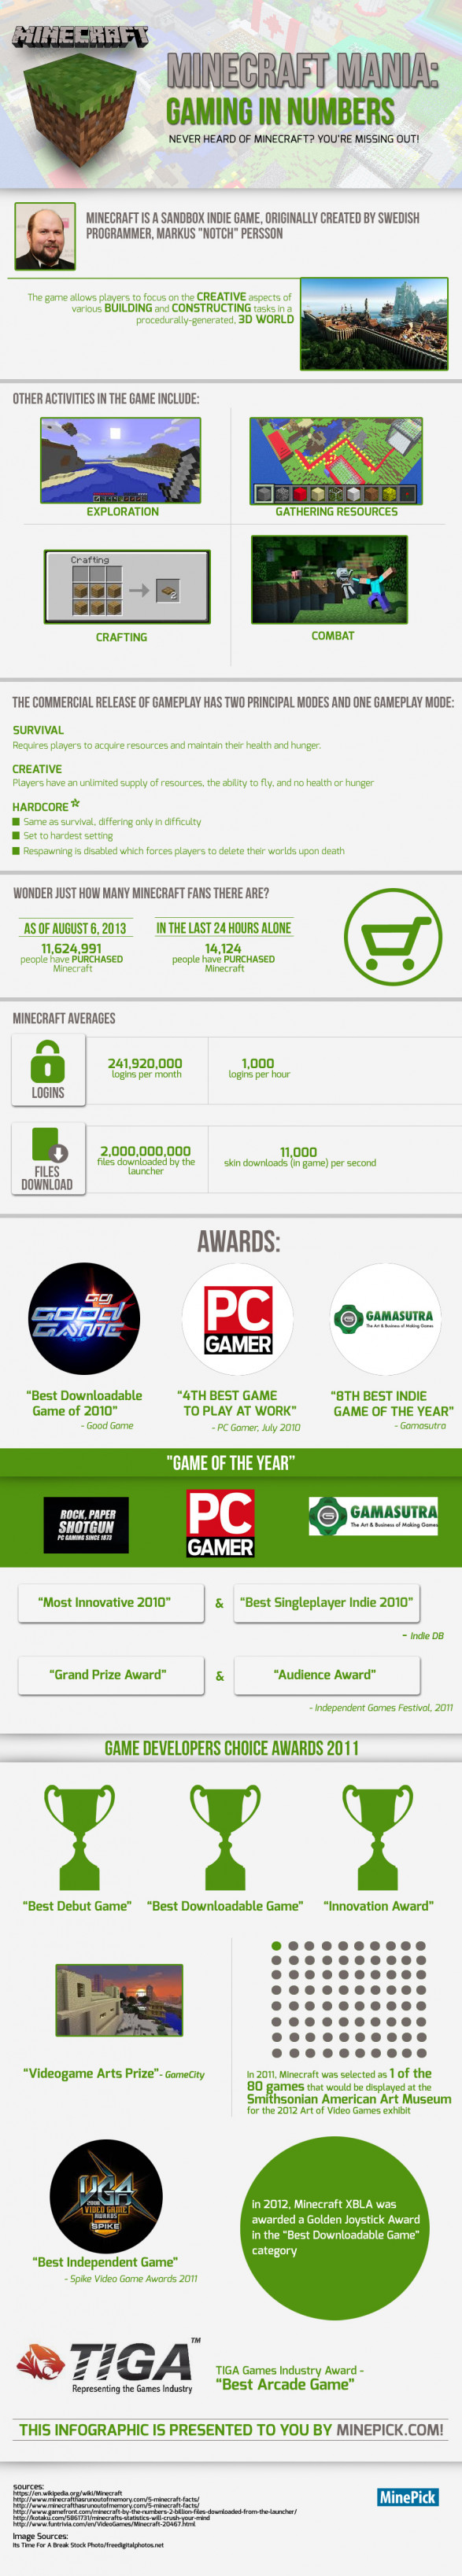 Minecraft Mania: Gaming in Numbers